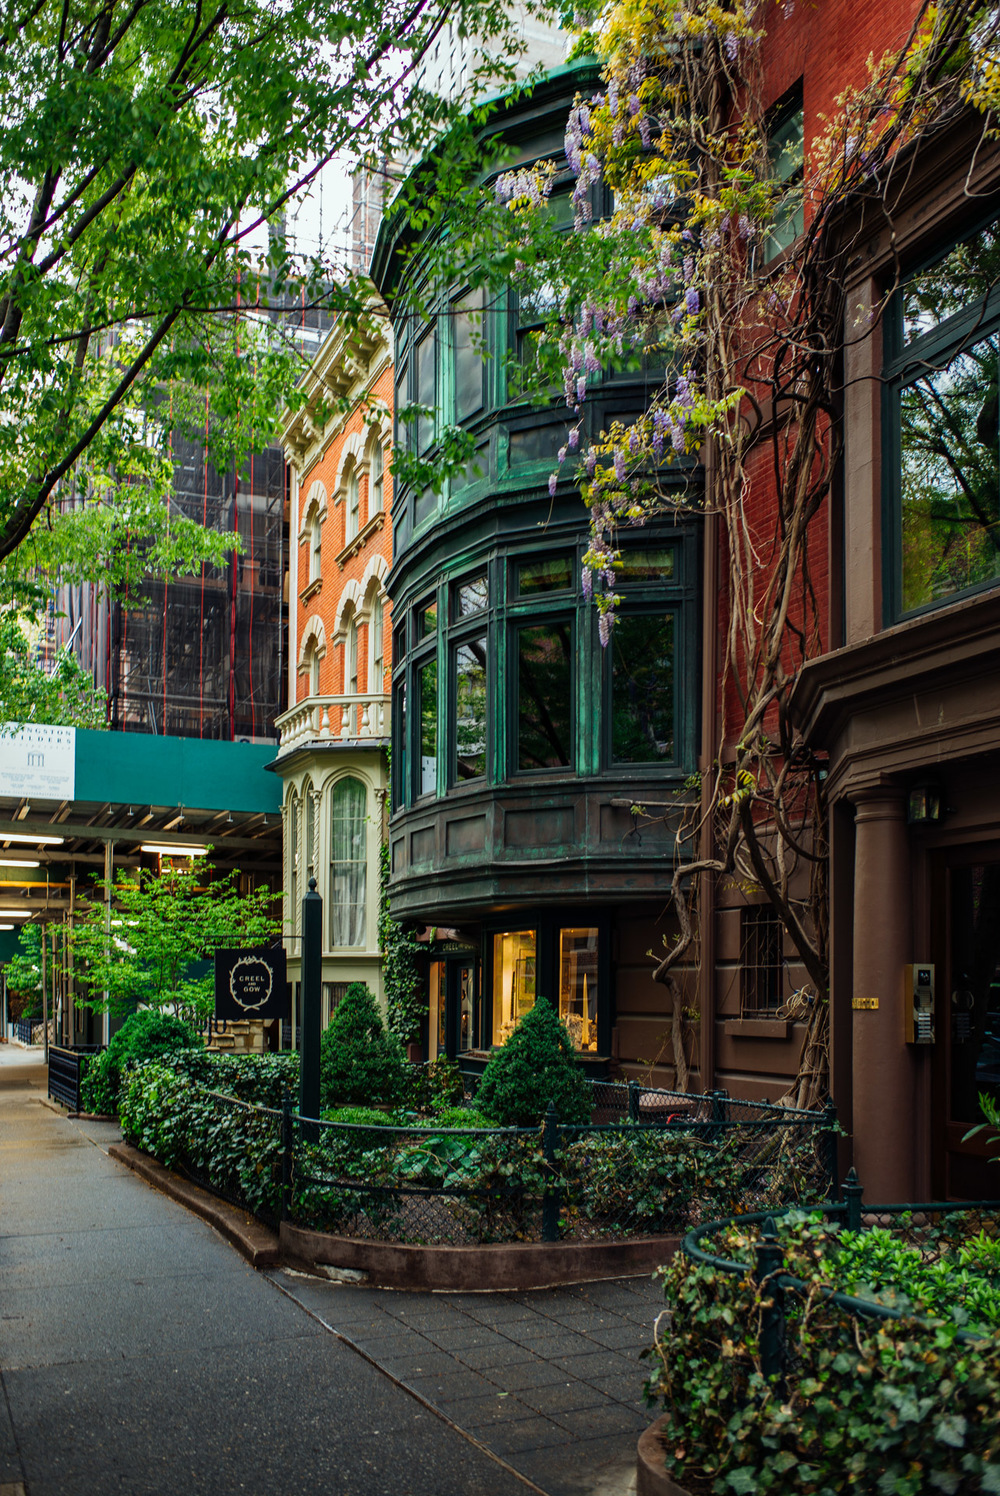 Upper East Side, Manhattan, New York.